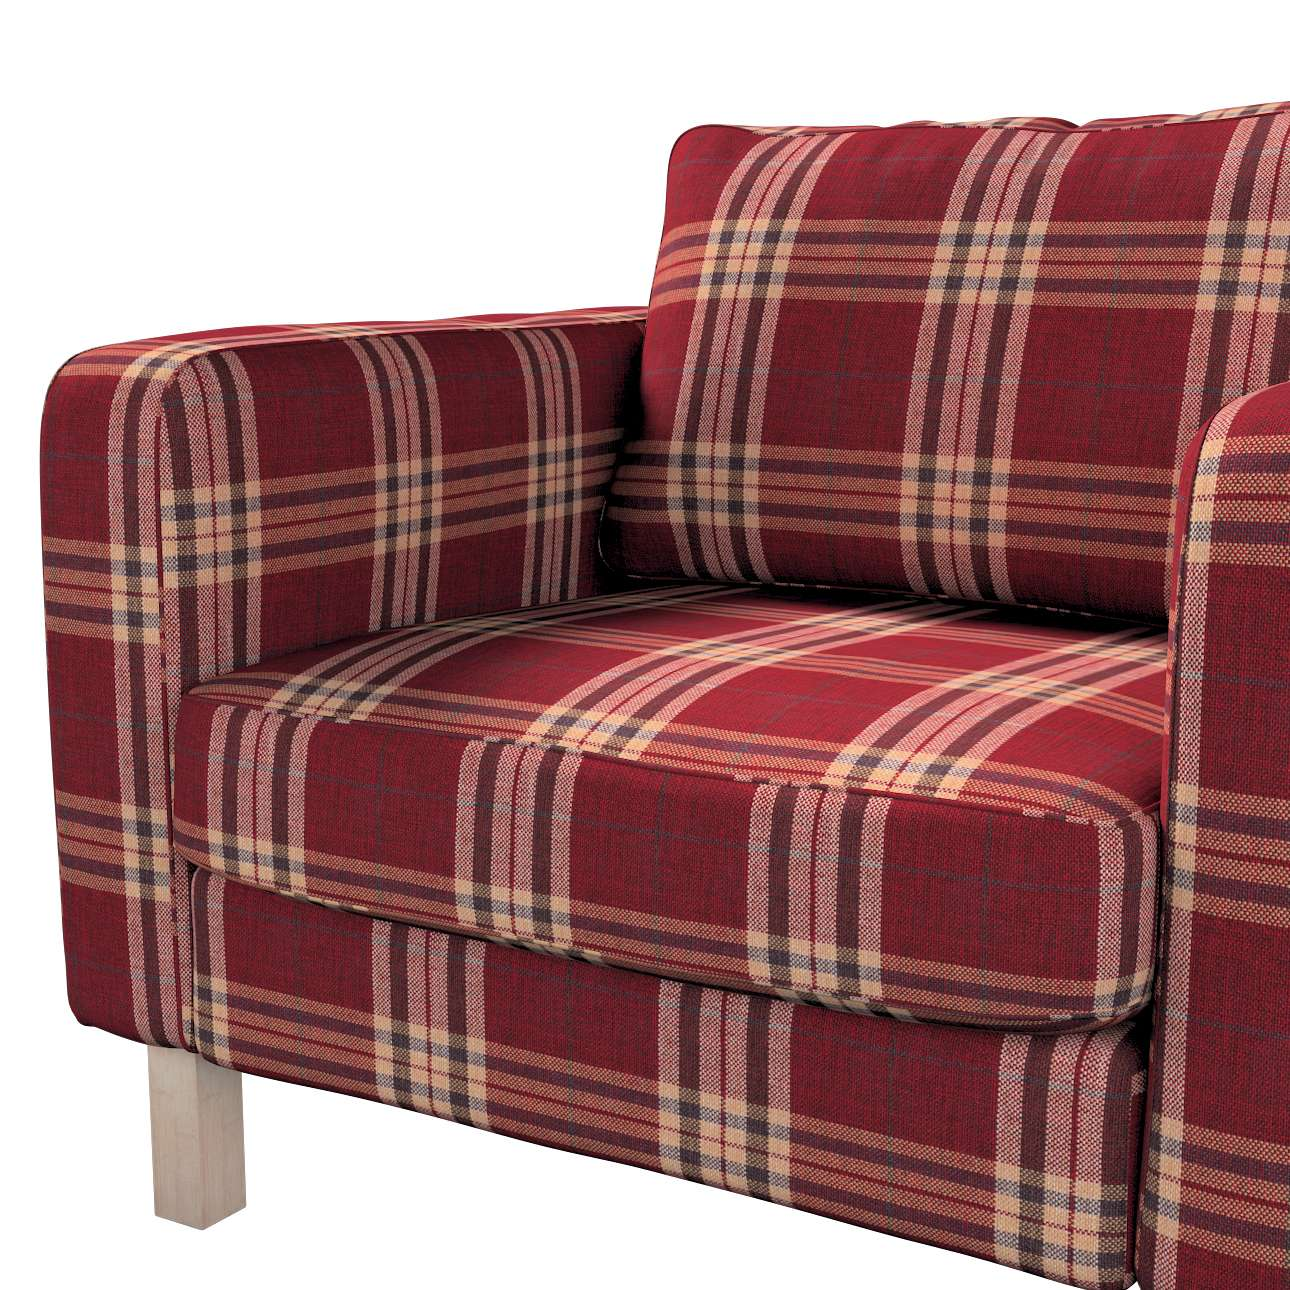 Karlstad armchair cover in collection Edinburgh, fabric: 115-73